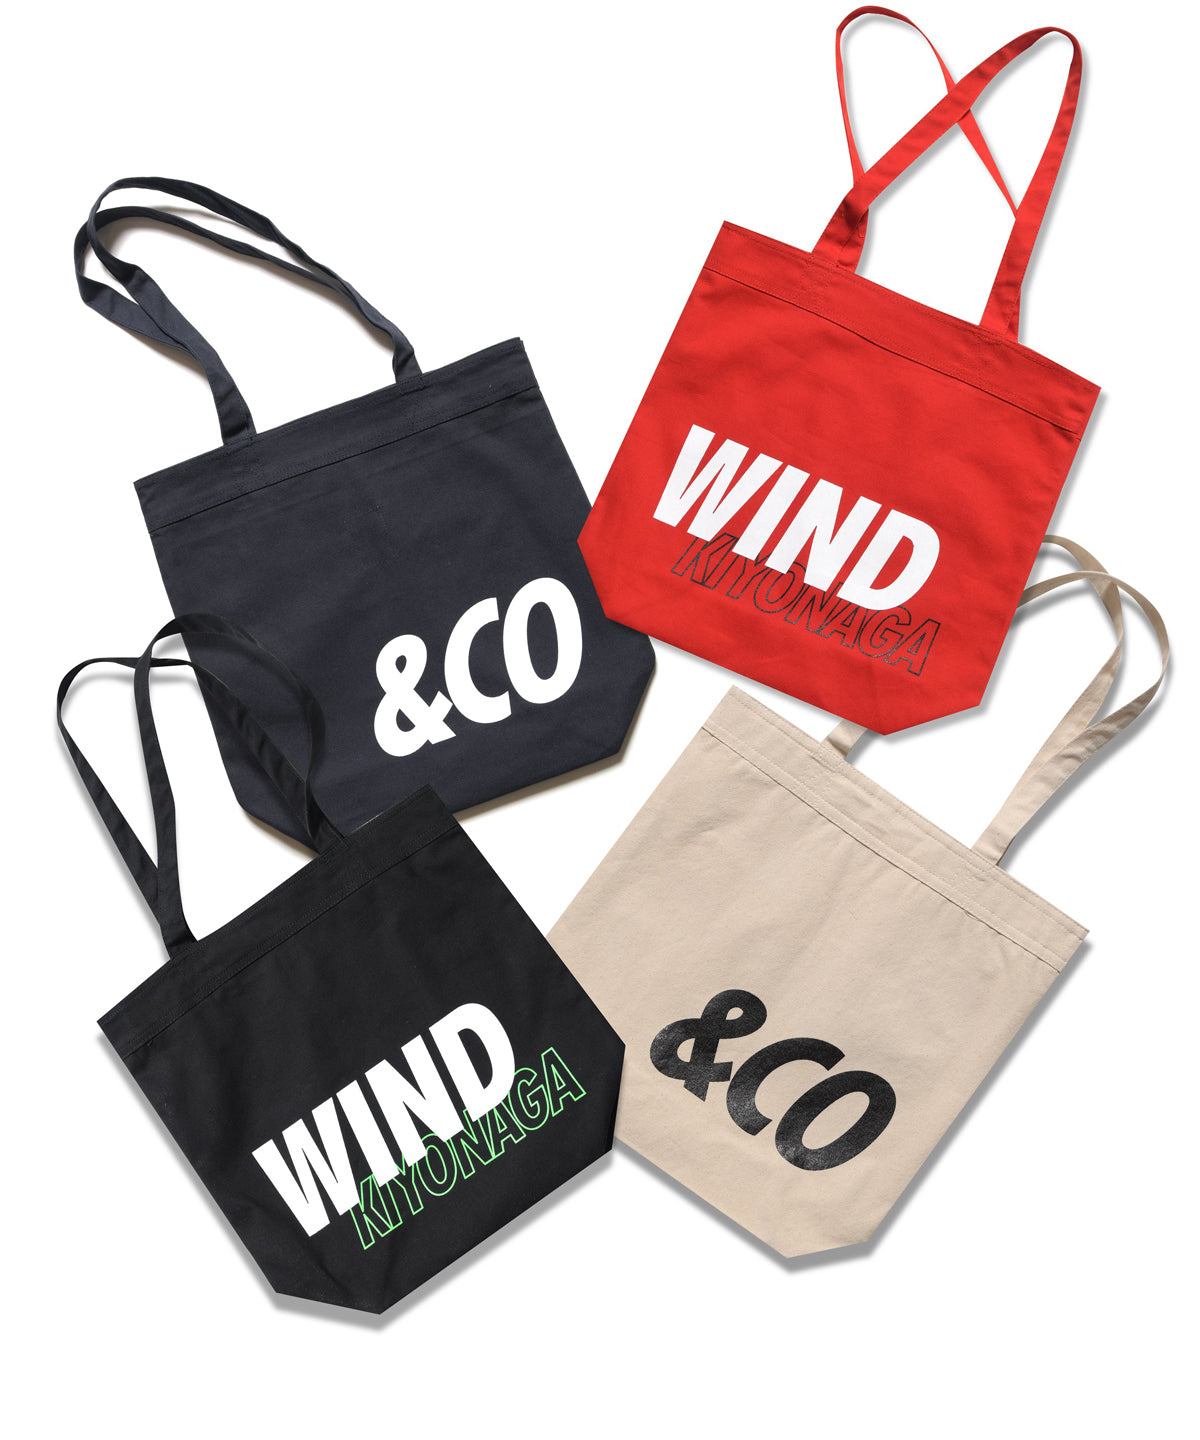 &CO WIND KIYONAGA TOTE BAG